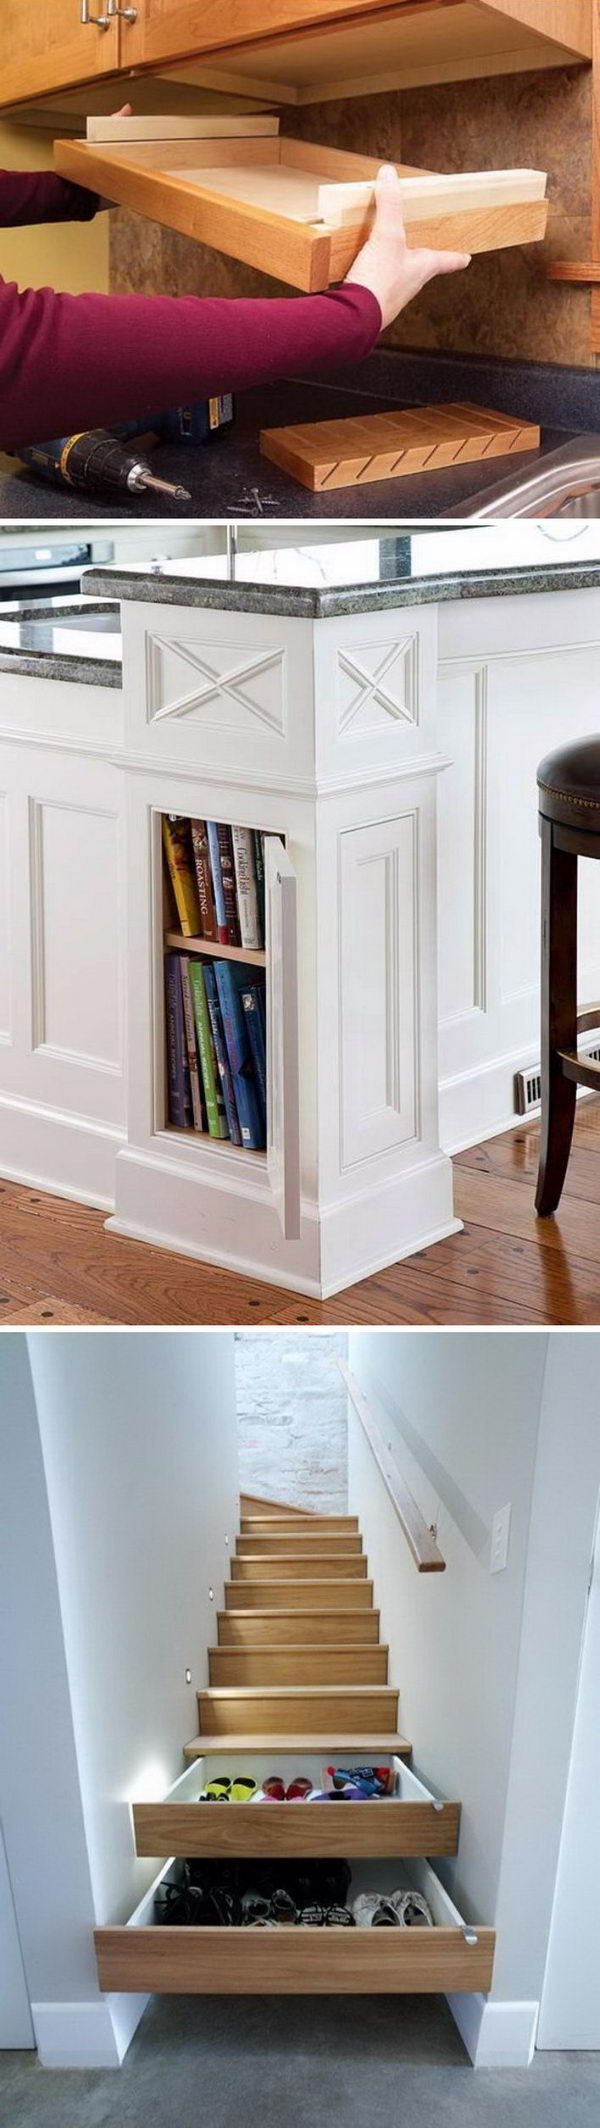 Clever Hidden Storage Ideas Perfect for Any Home.